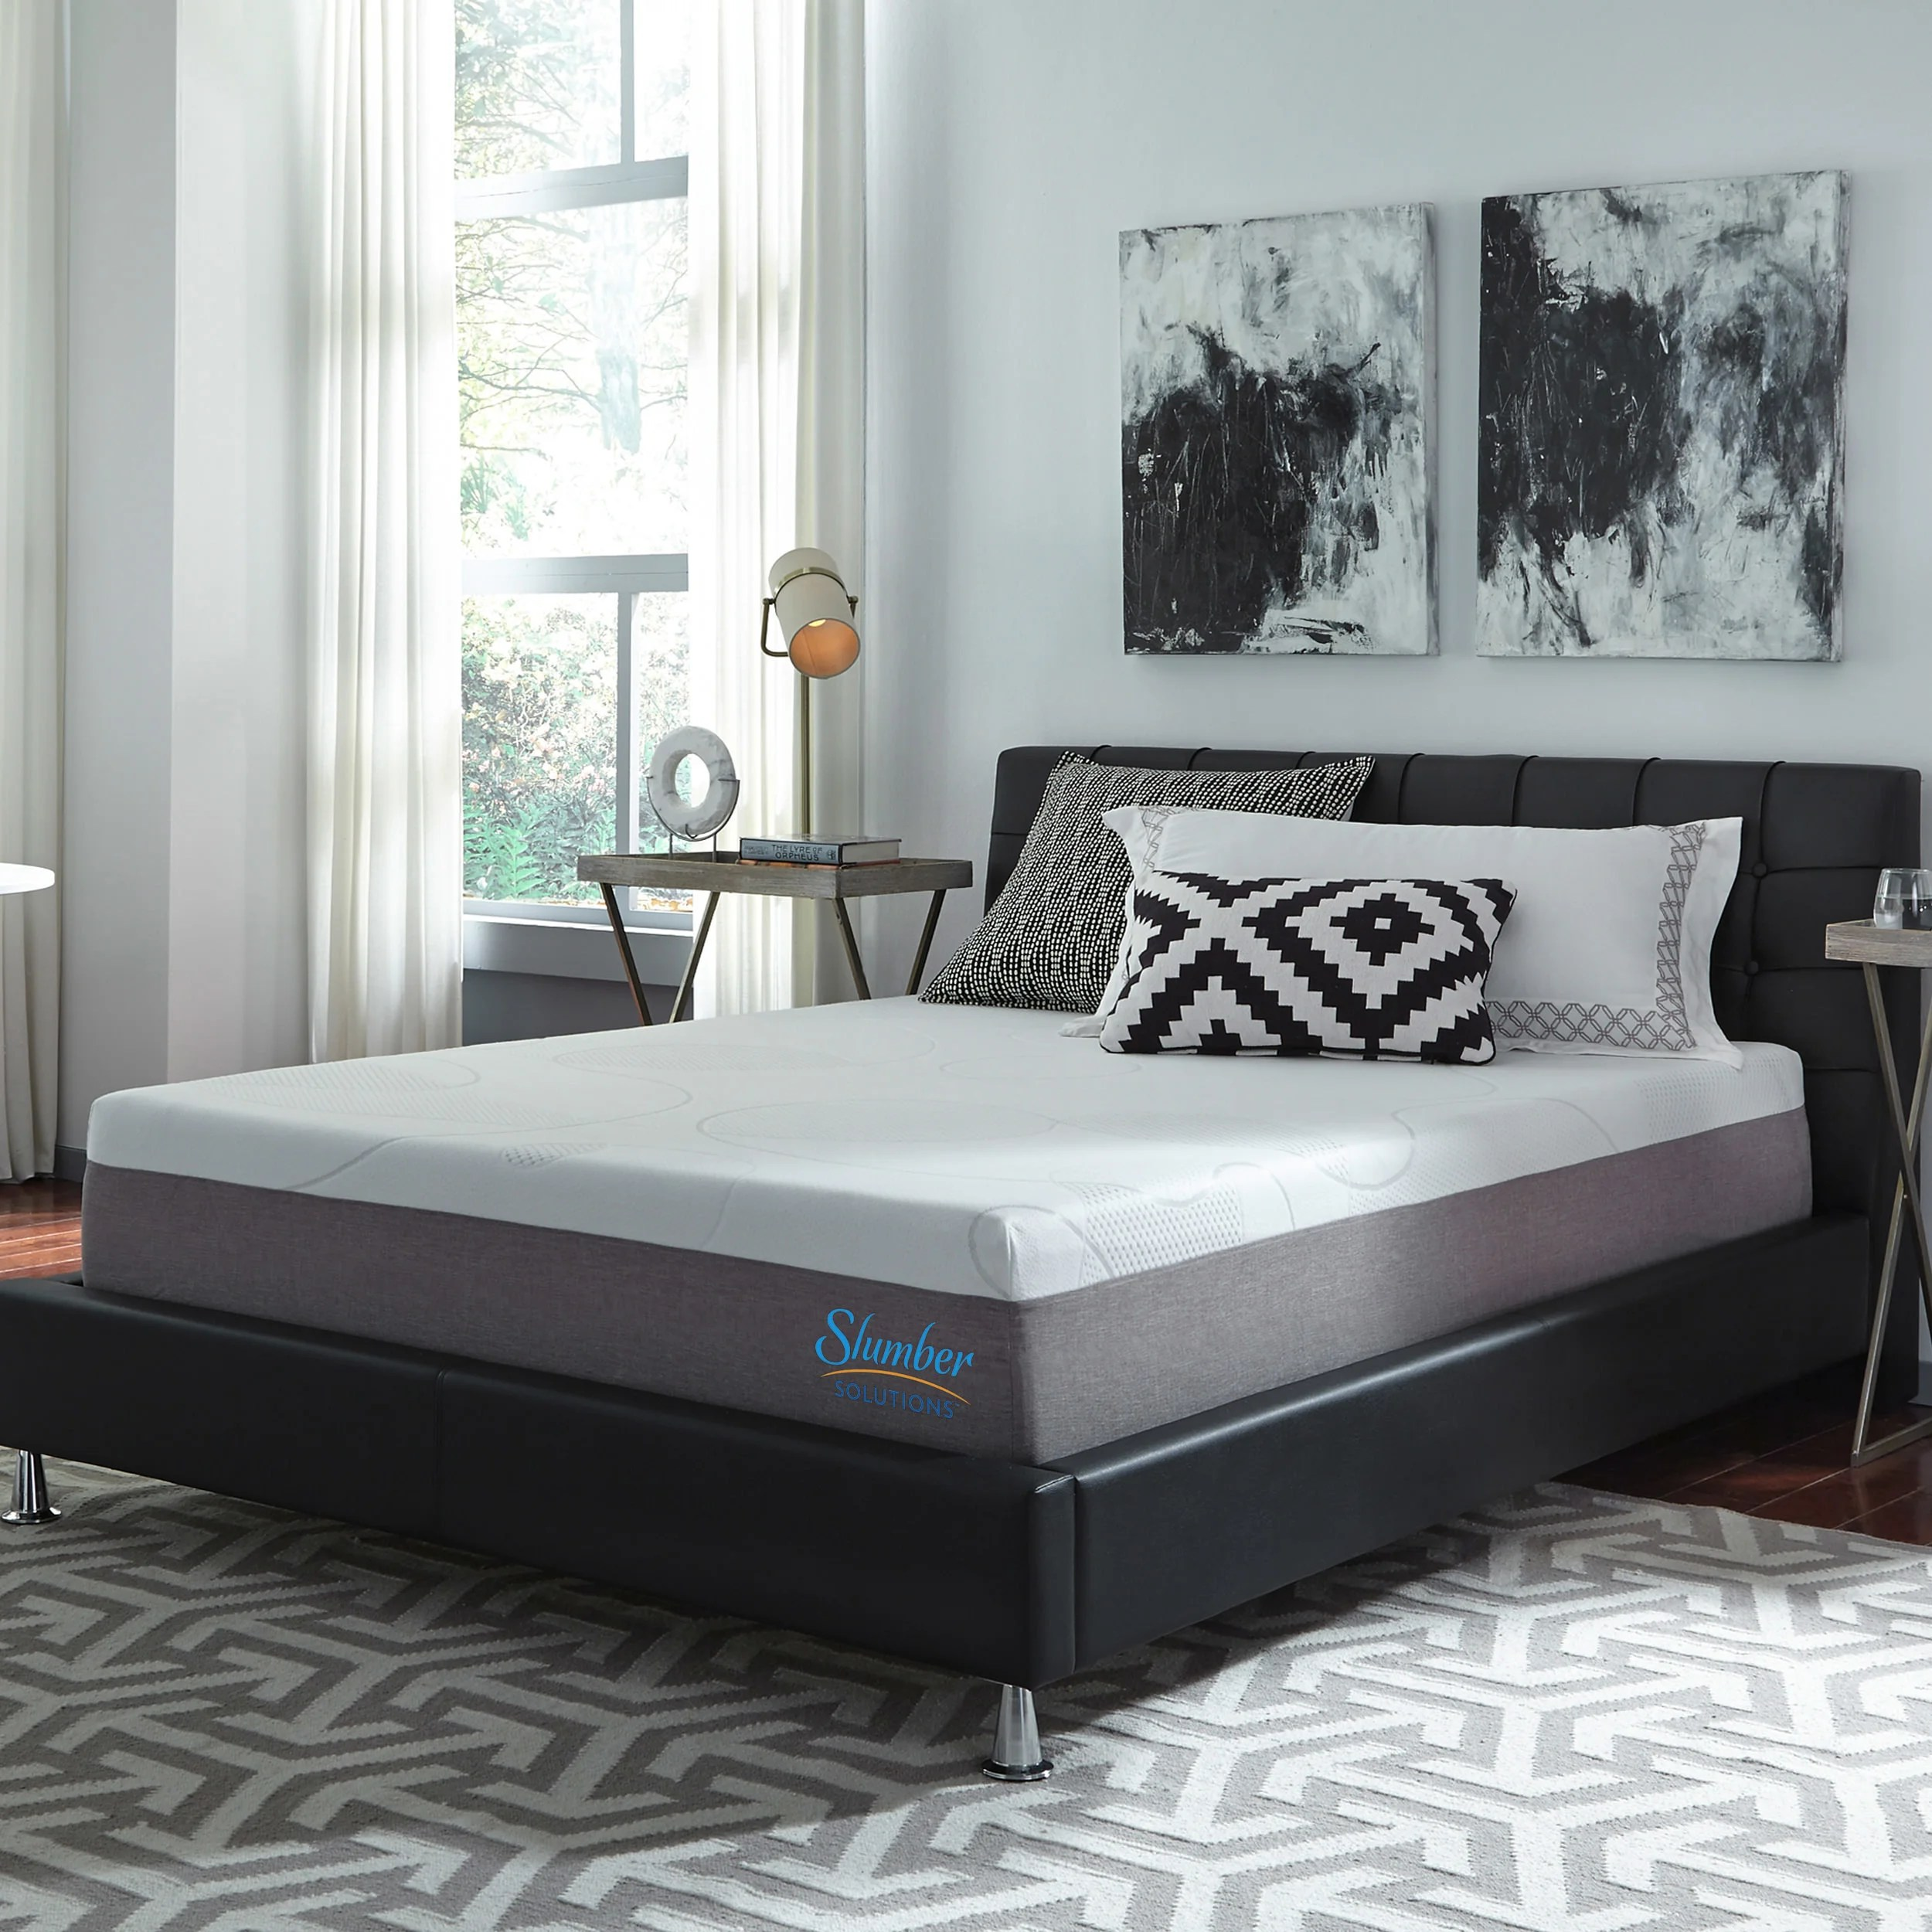 Inexpensive Full Size Mattress Buy Full Size Mattresses Online At Overstock Our Best Bedroom